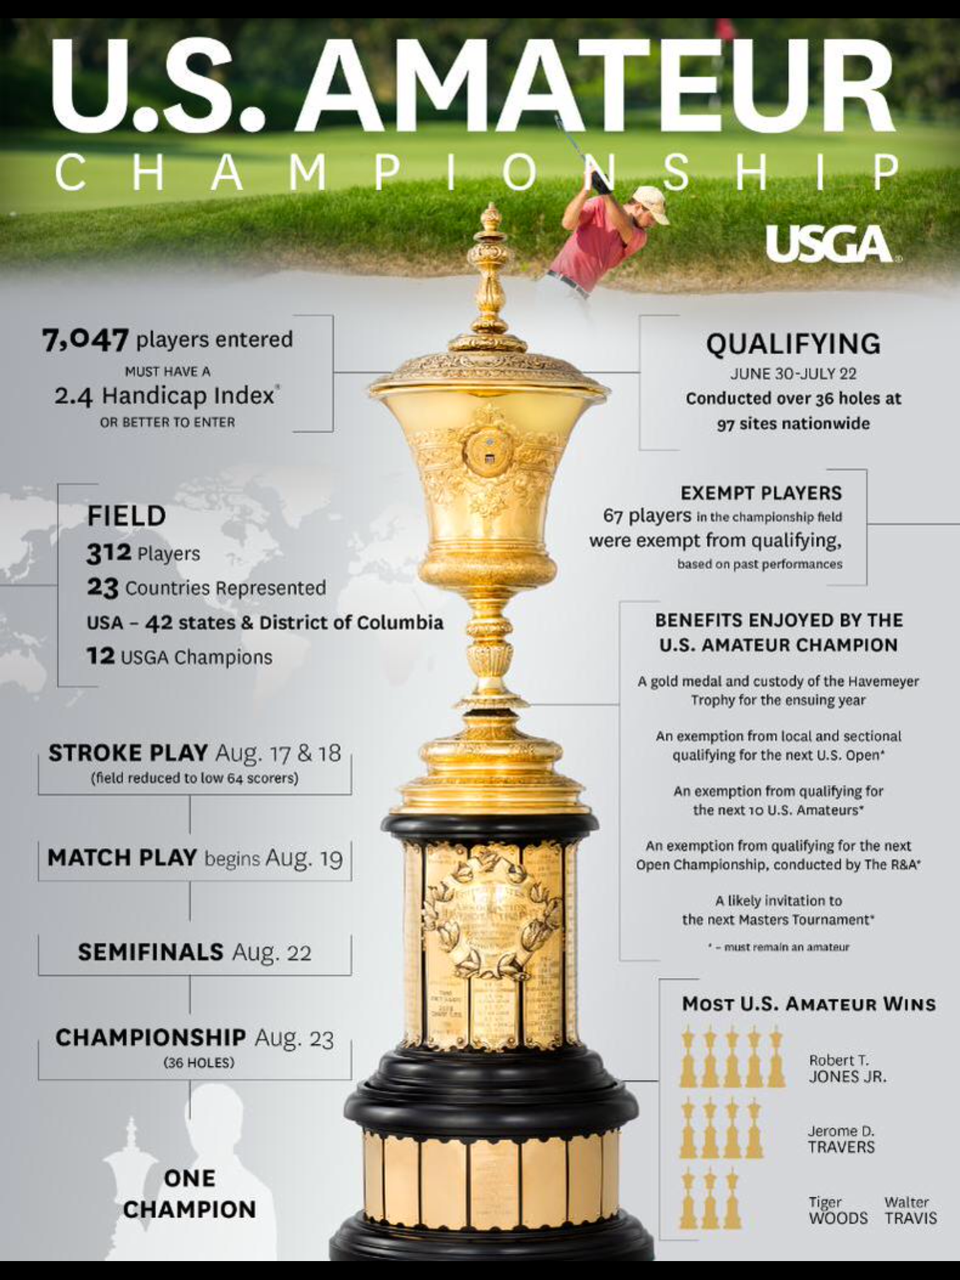 US Amateur 2015 Infographic  sc 1 st  Golf Bible : us amateur sectional qualifying - Sectionals, Sofas & Couches